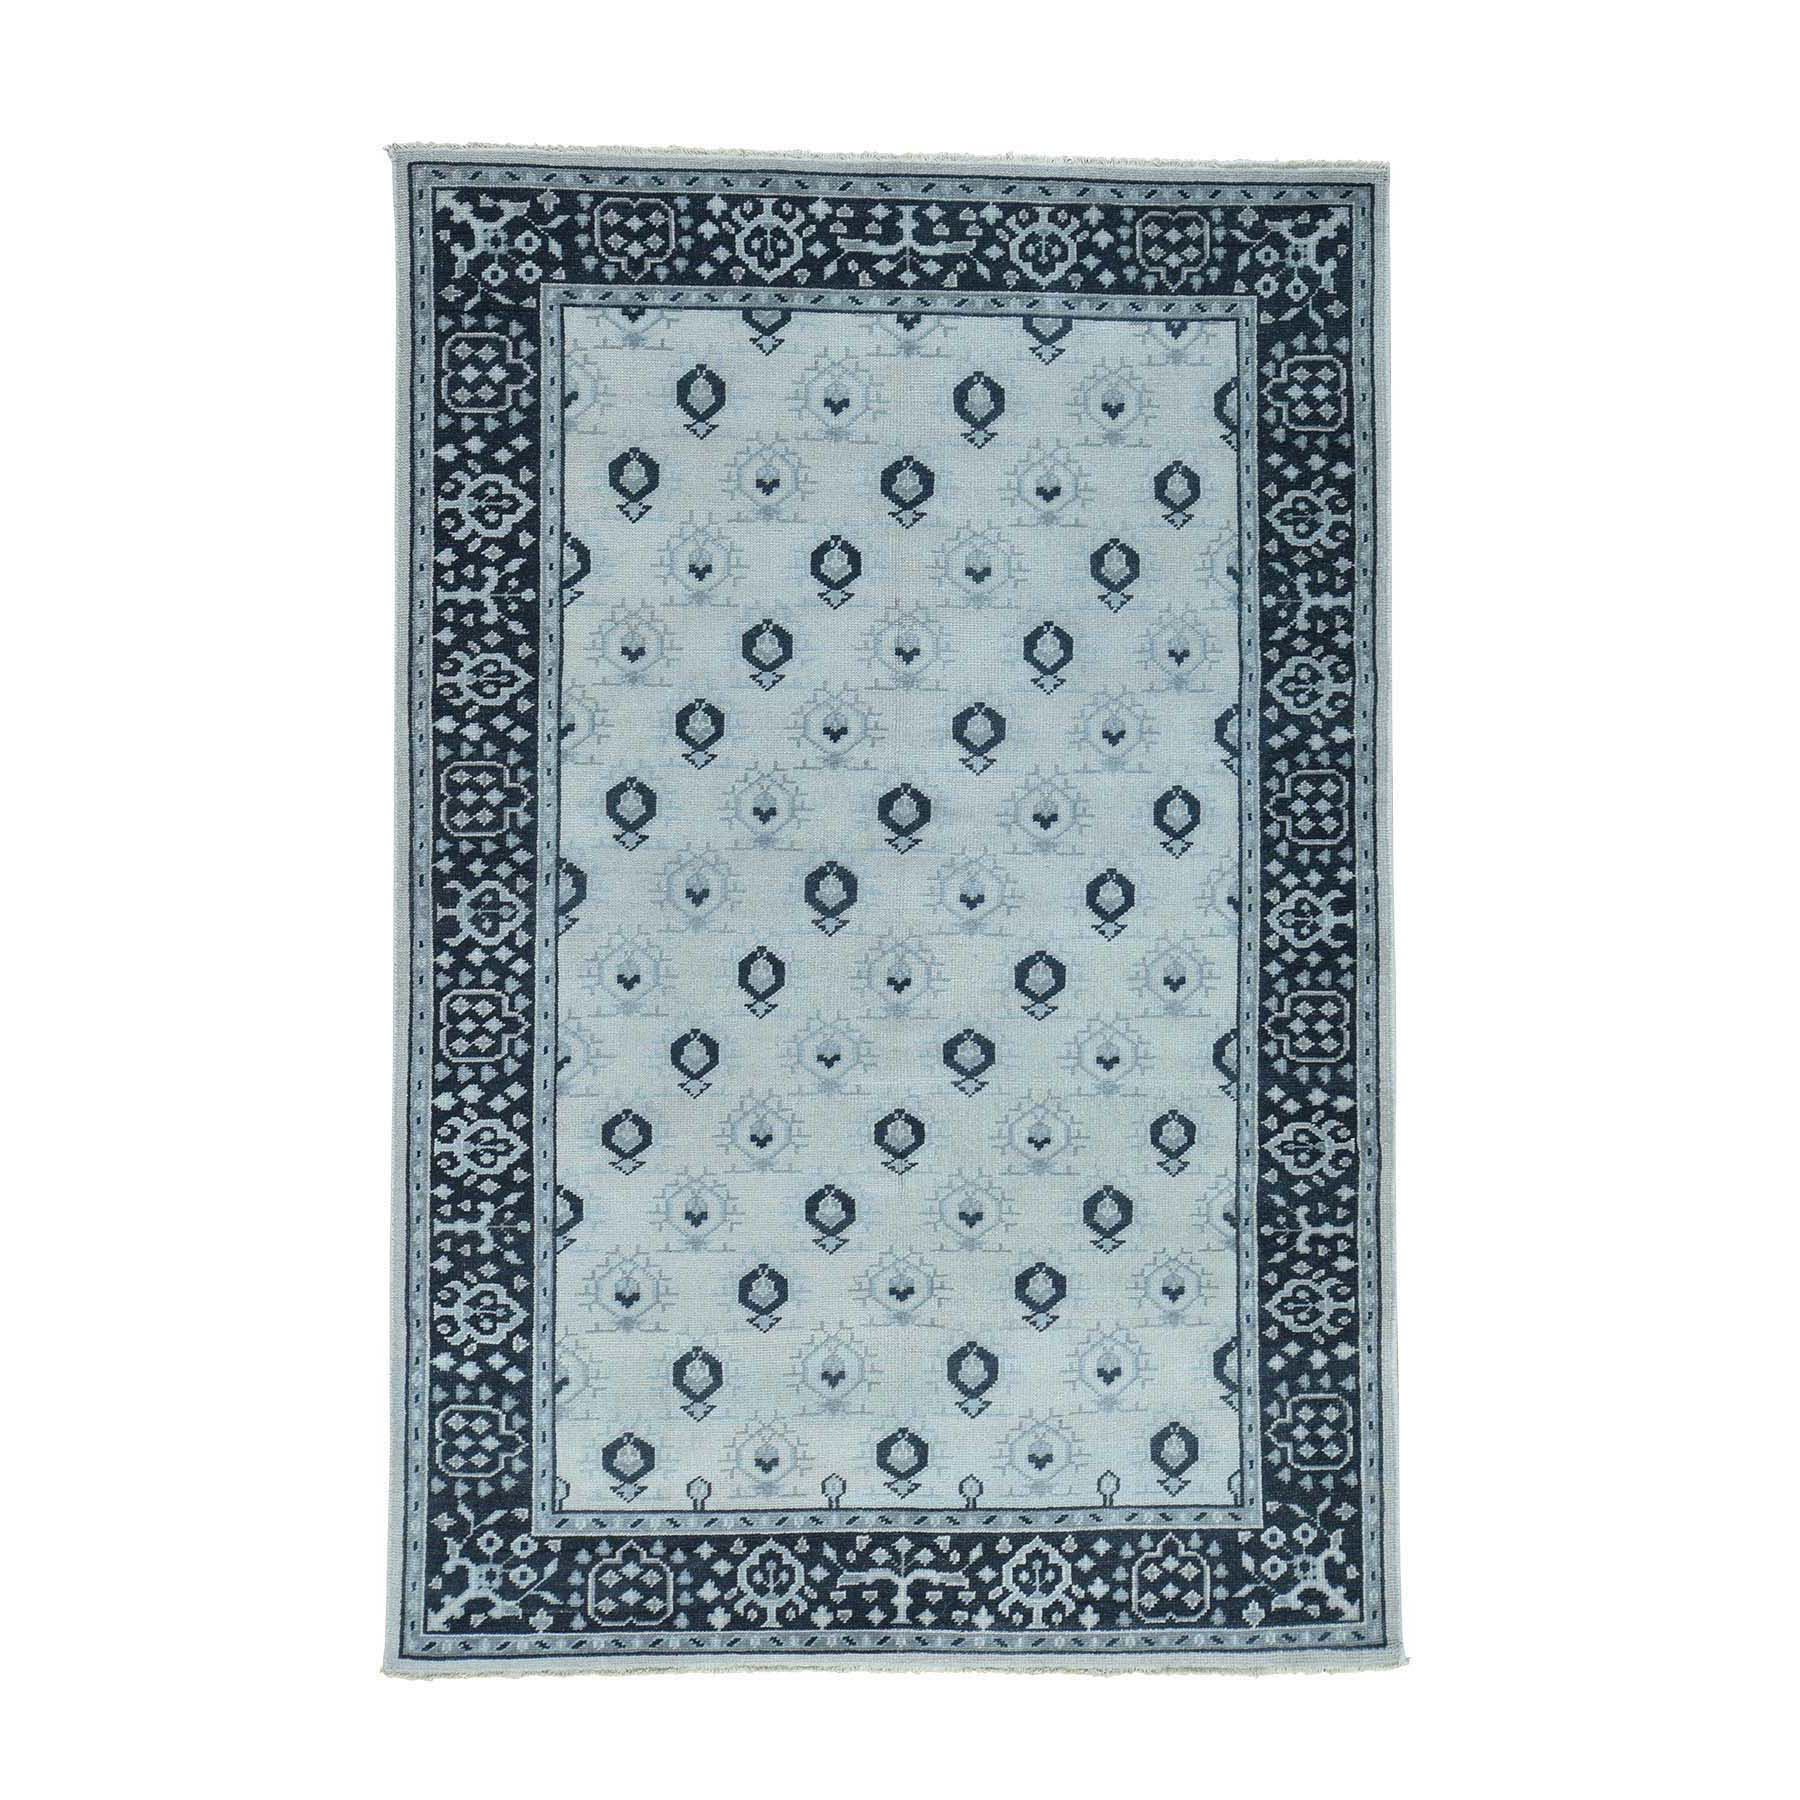 "5'x6'10"" Handmade Pure Wool Turkish Knot Oushak Cropped Thin Rug"